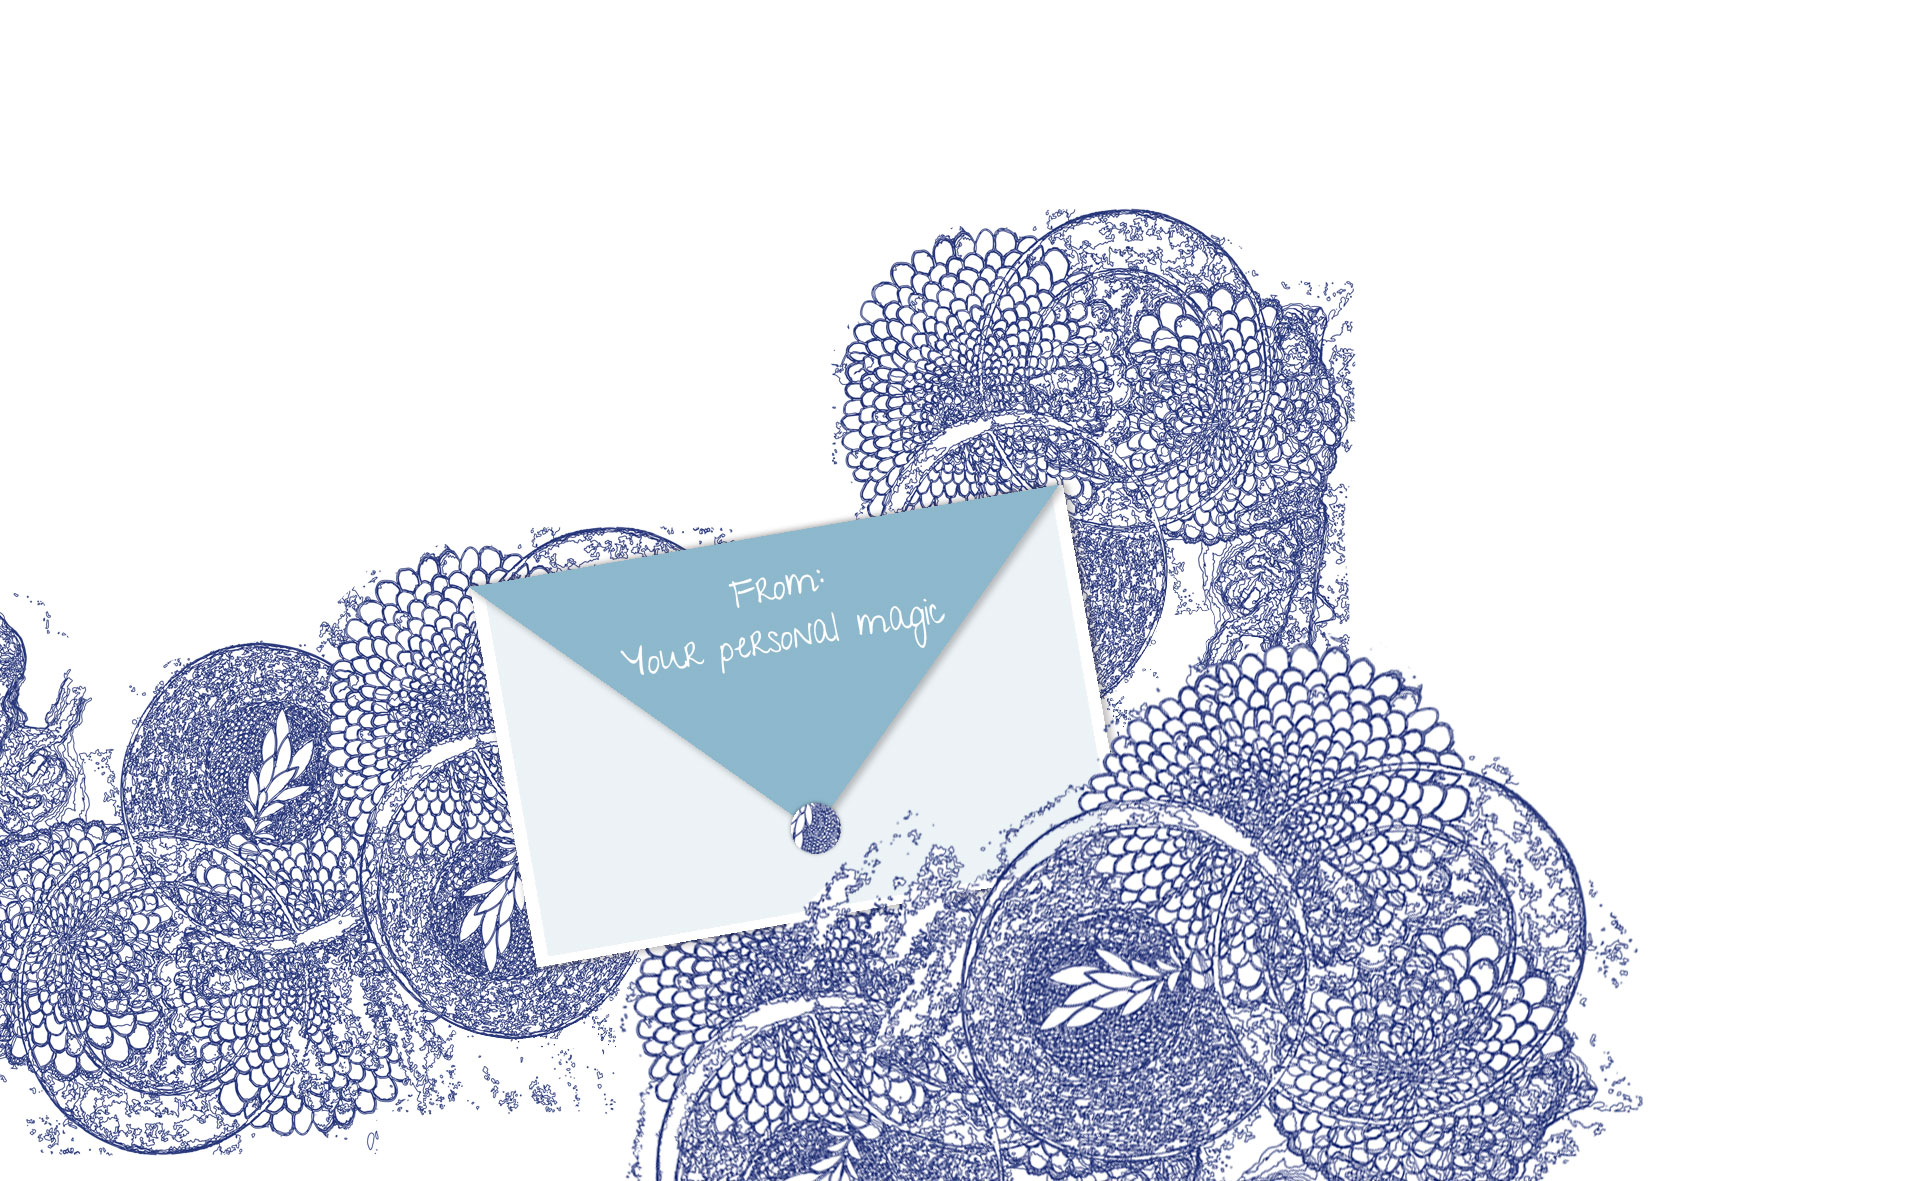 A letter from your personal magic